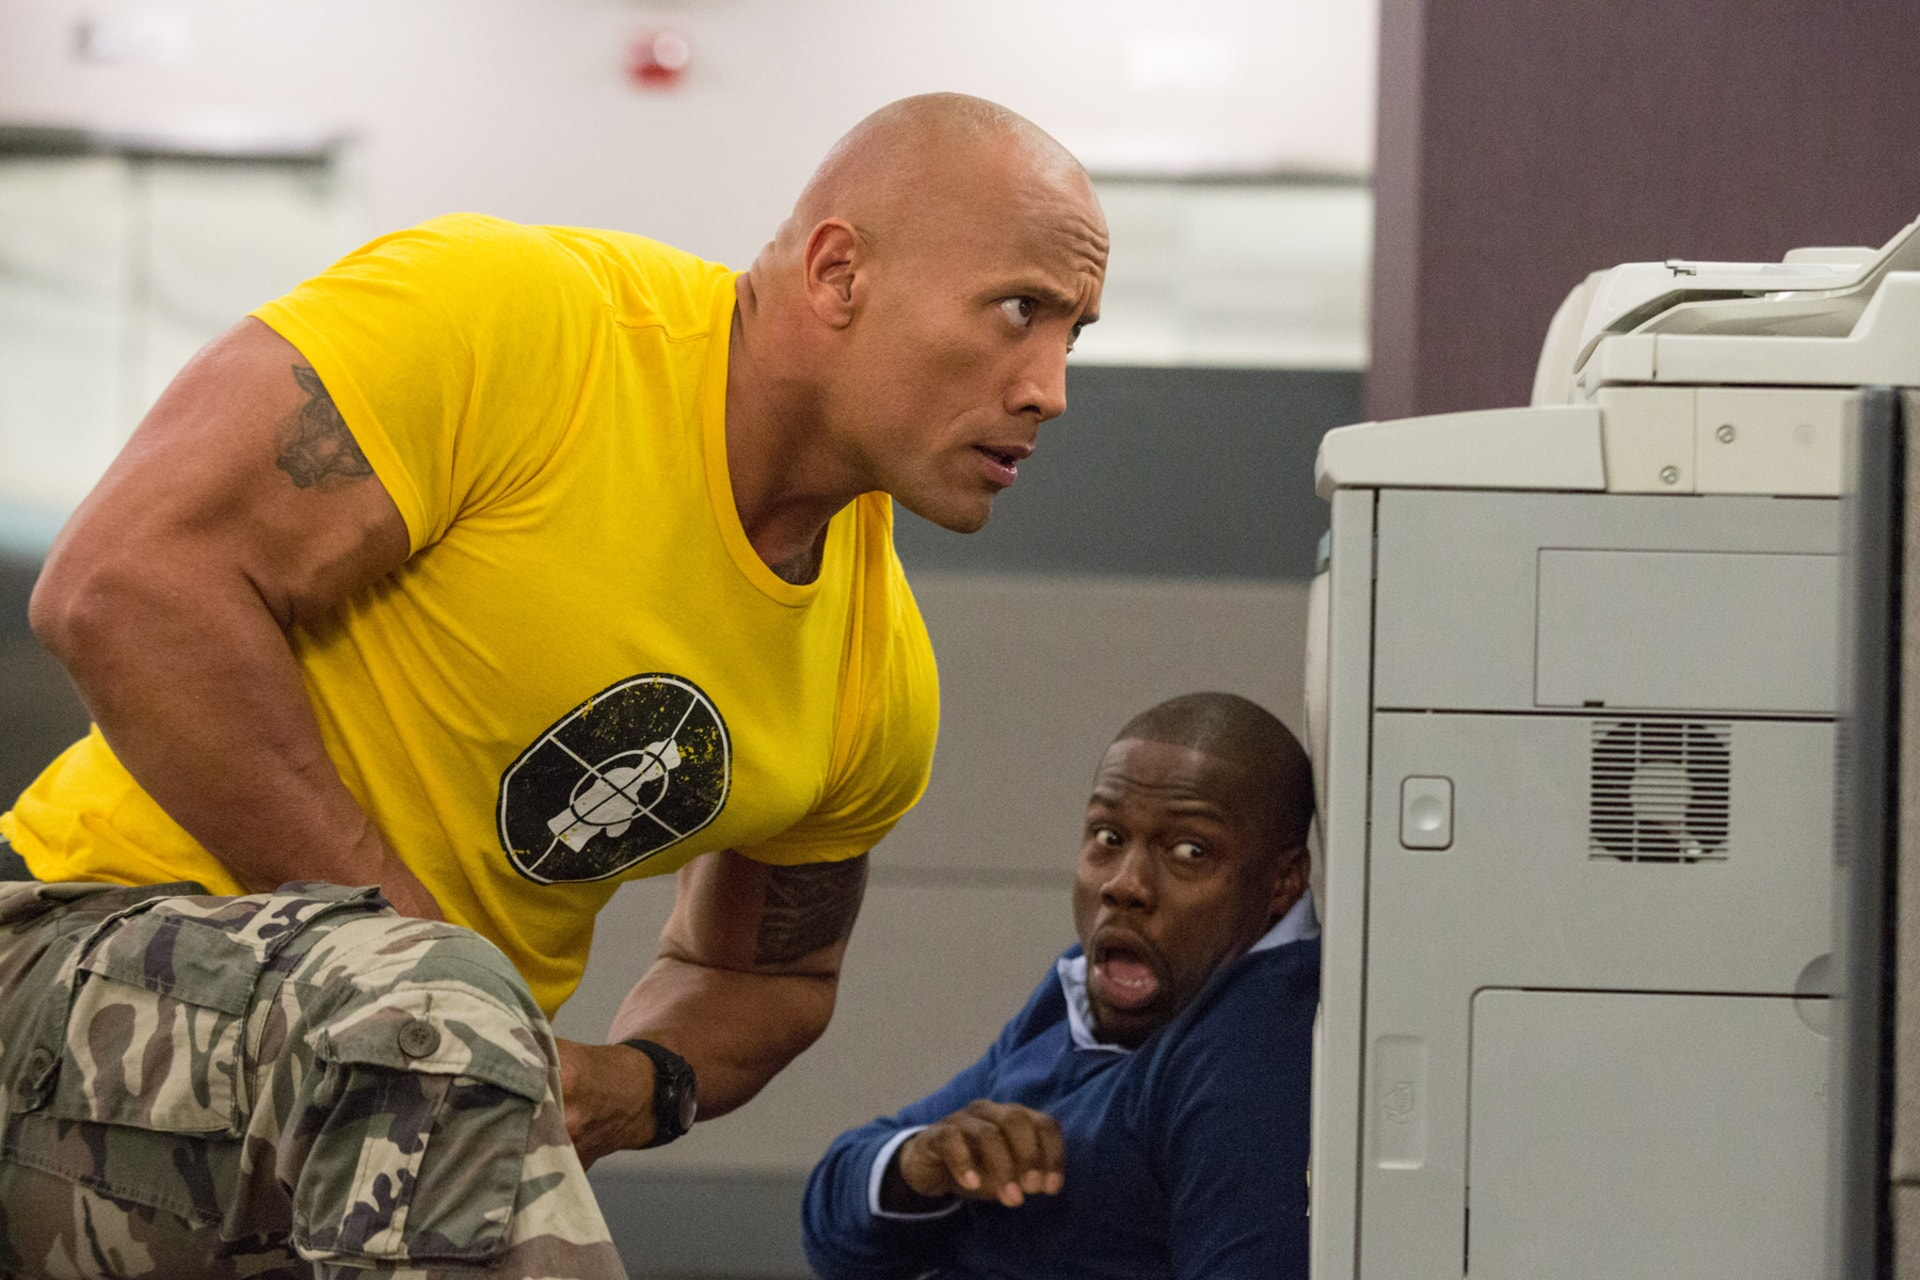 KEVIN HART as Calvin and DWAYNE JOHNSON as Bob crouching down behind office equipment